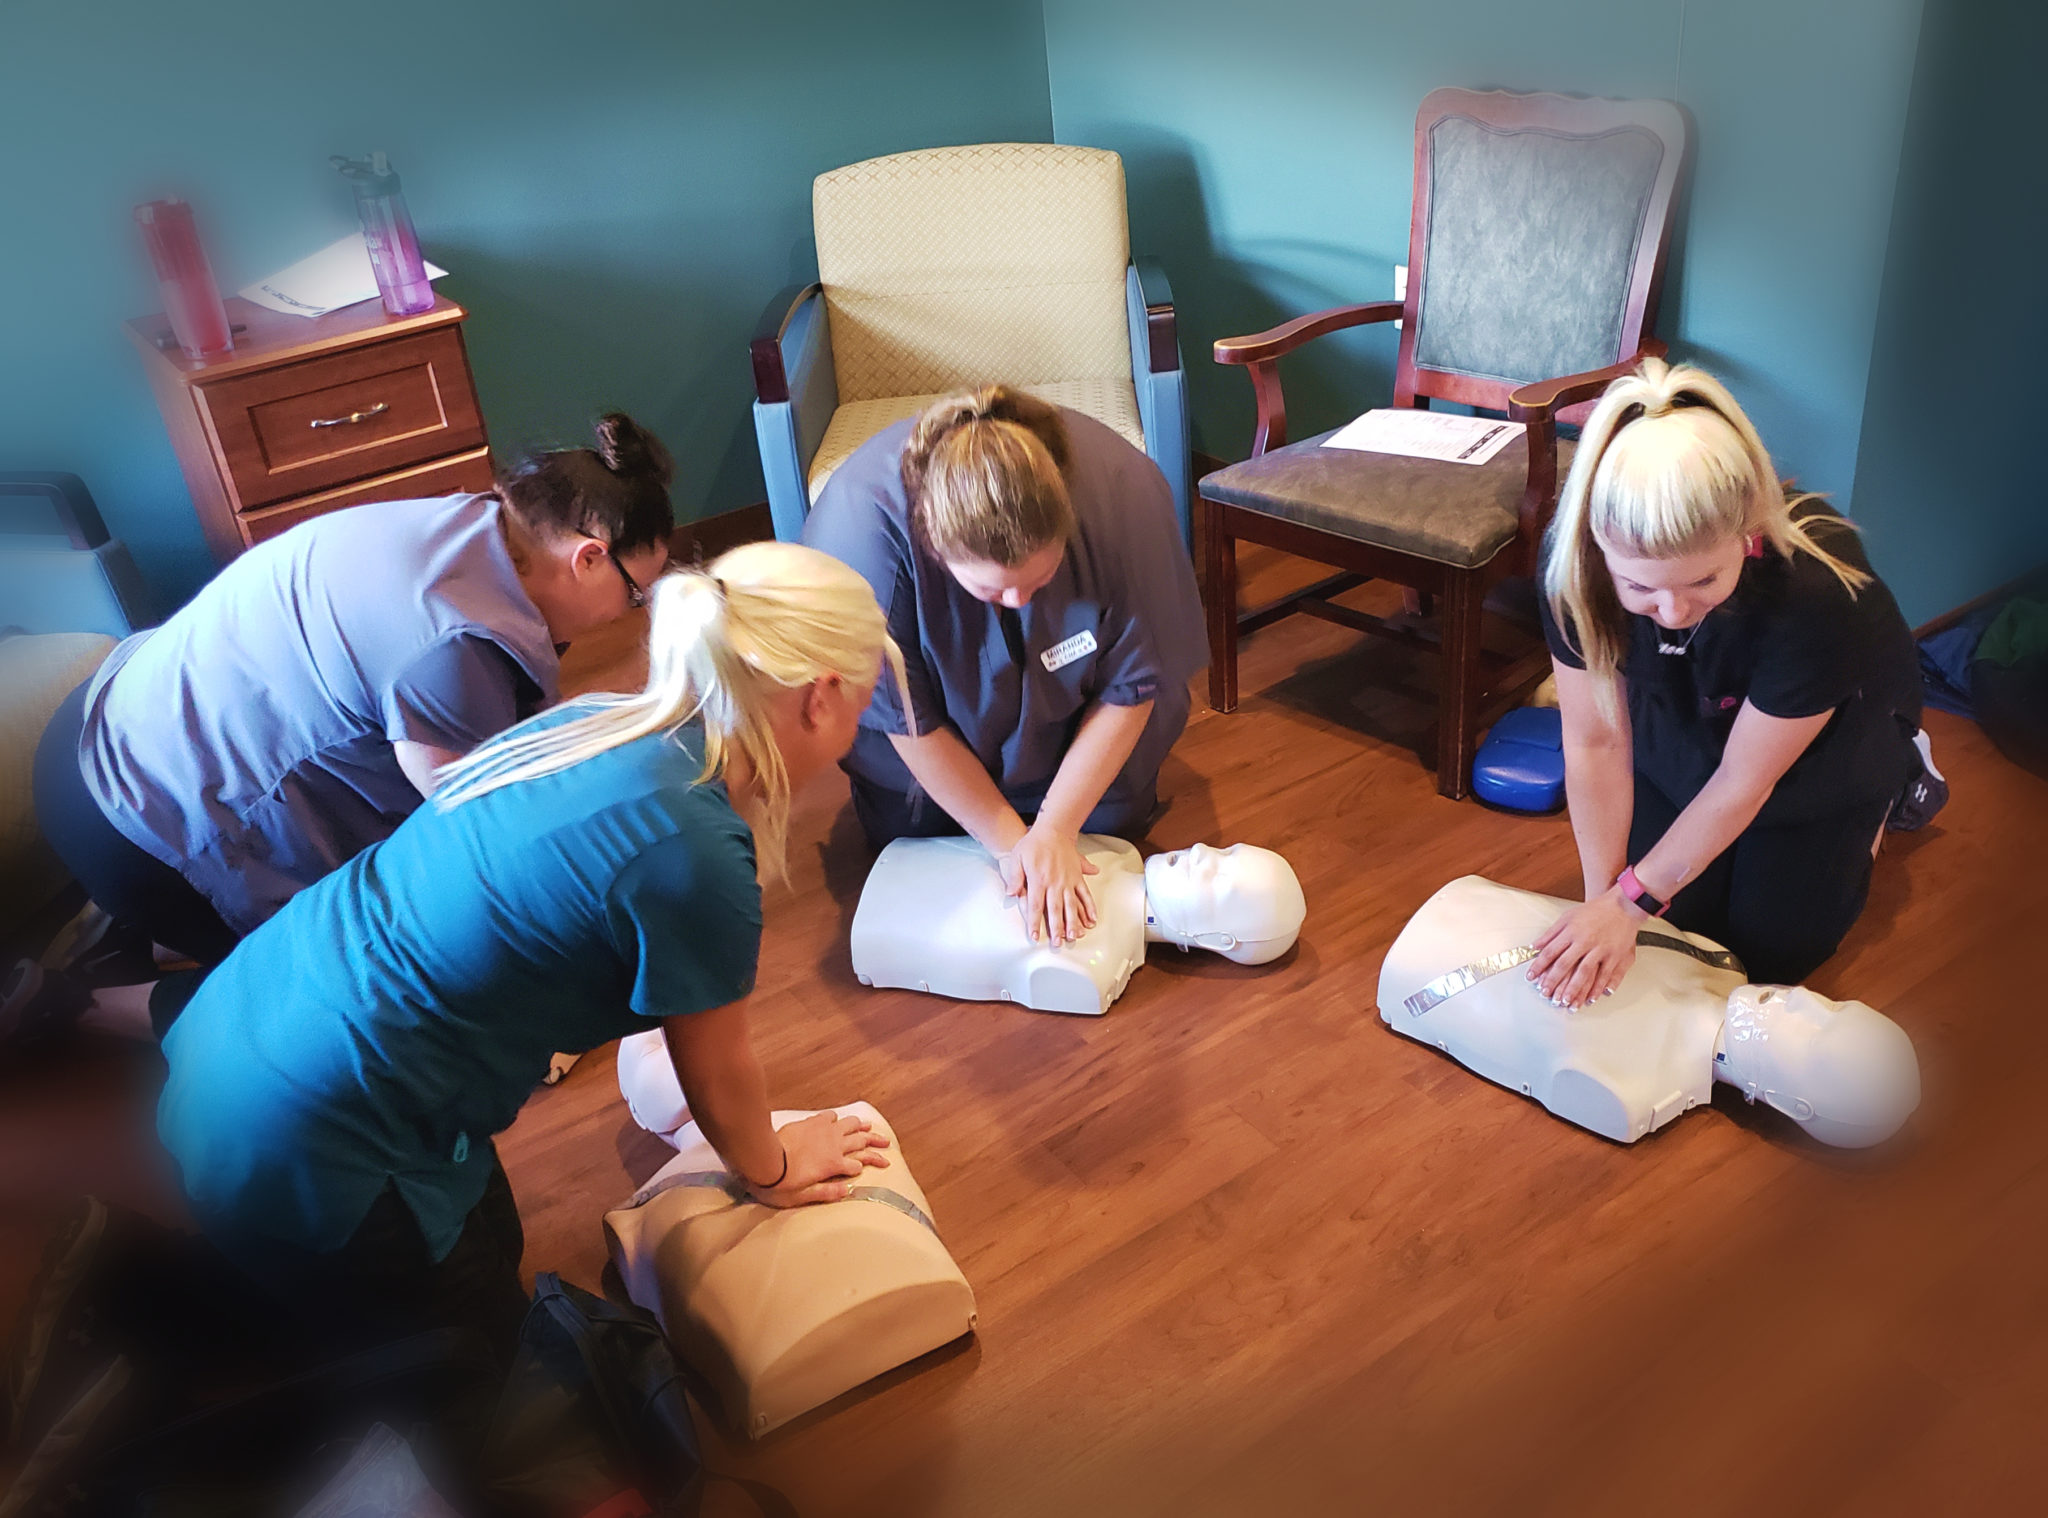 Business CPR Training Madison WI - Rescue Resources, LLC